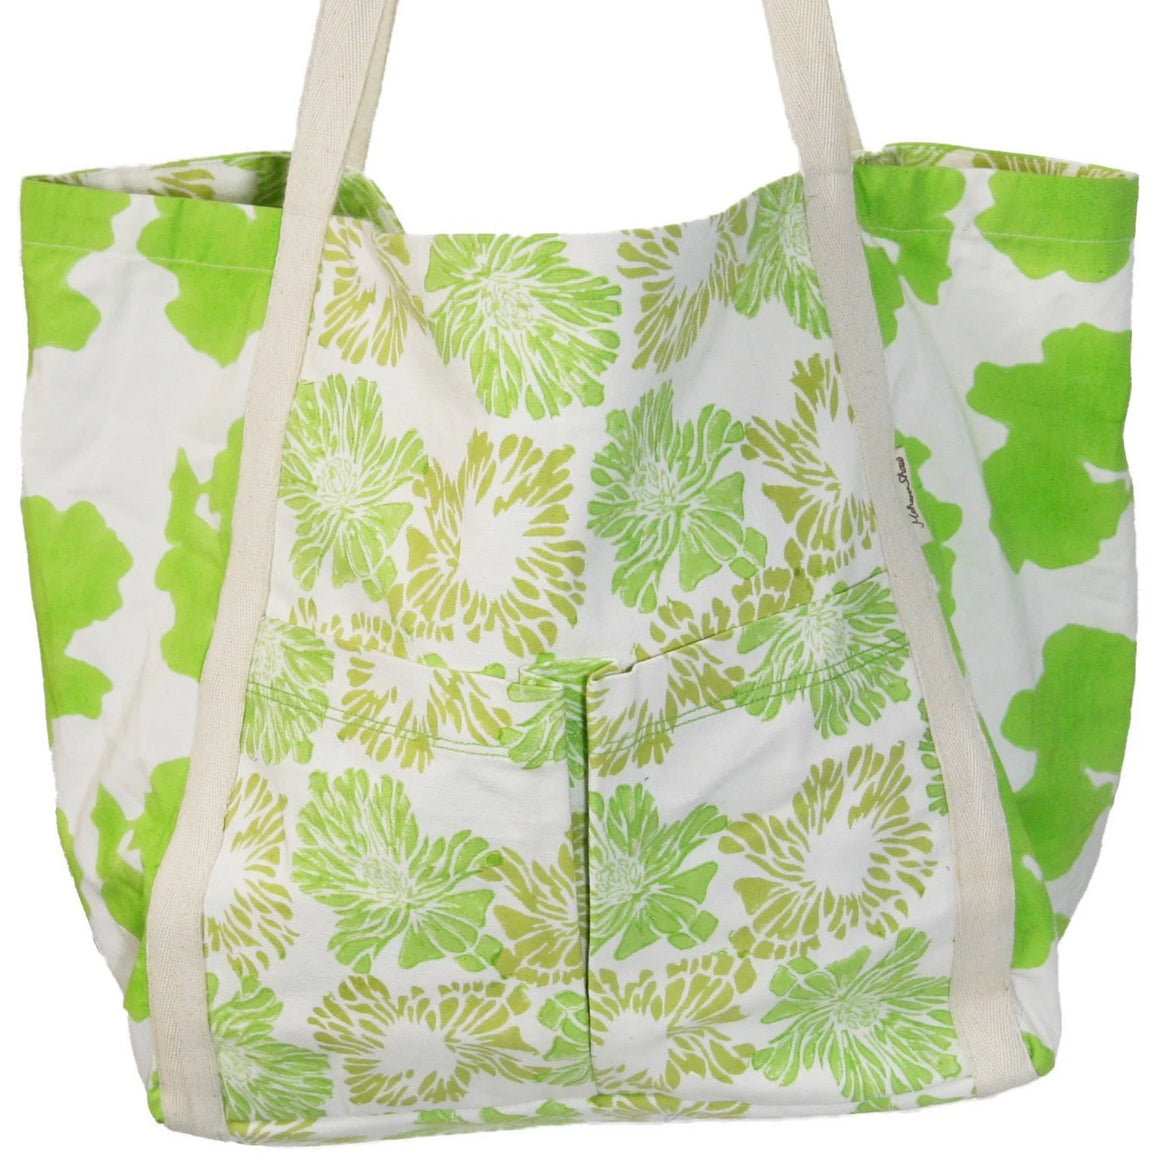 Market Tote in Greenery Print in Organic Cotton Canvas